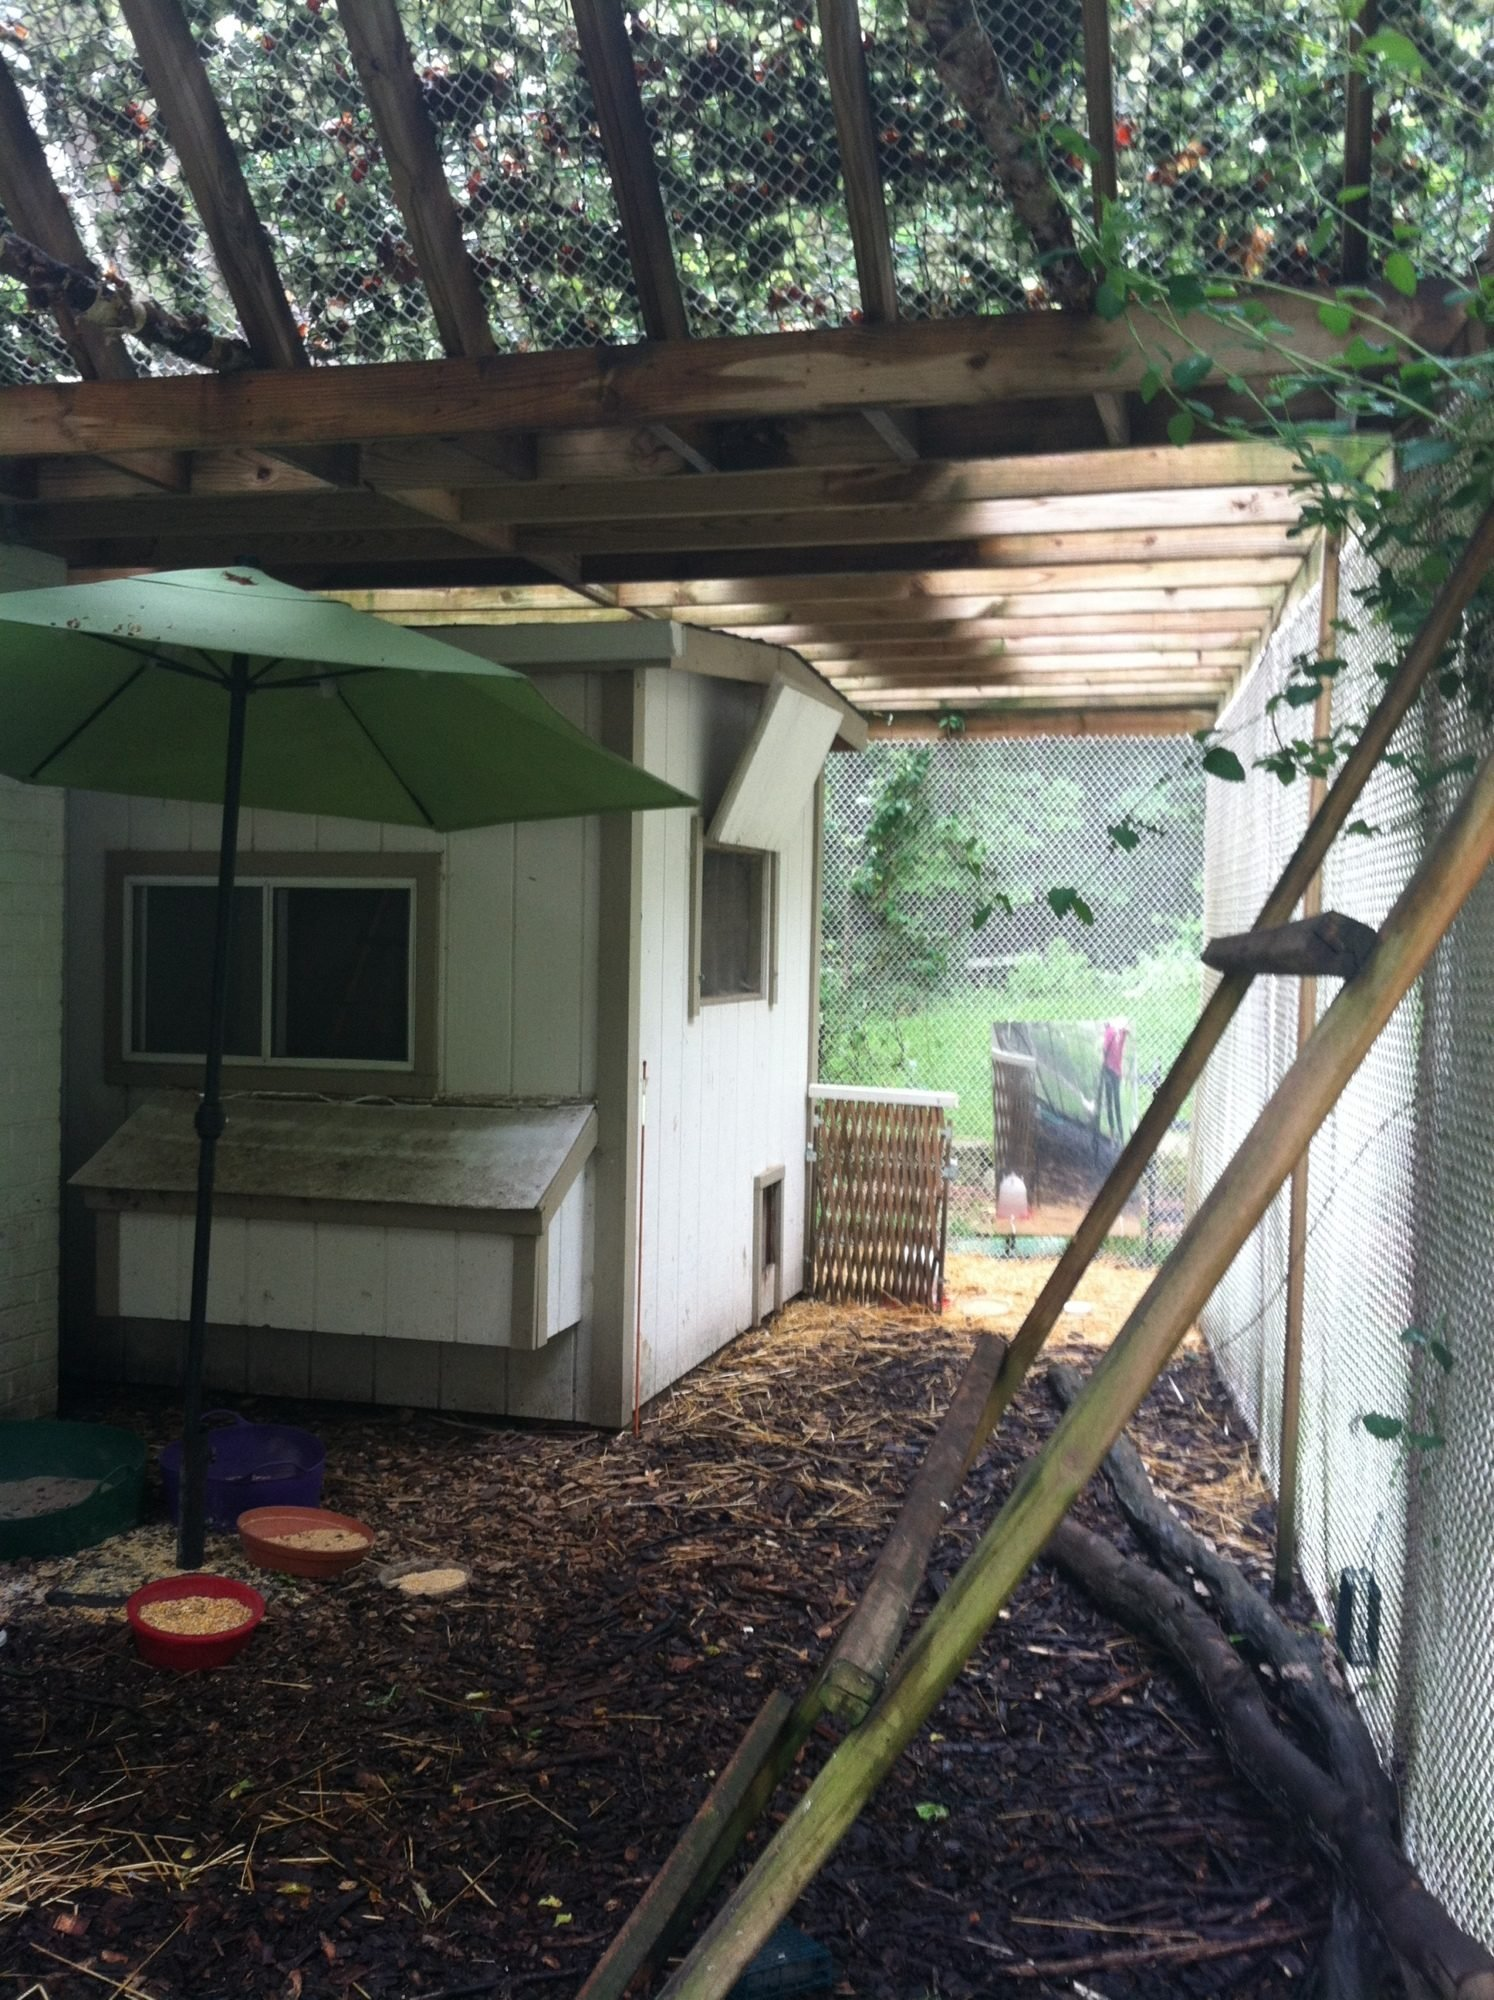 My chicken/peafowl coop.  Added patio umbrella for 2013 rainy season, to protects food bowls etc....